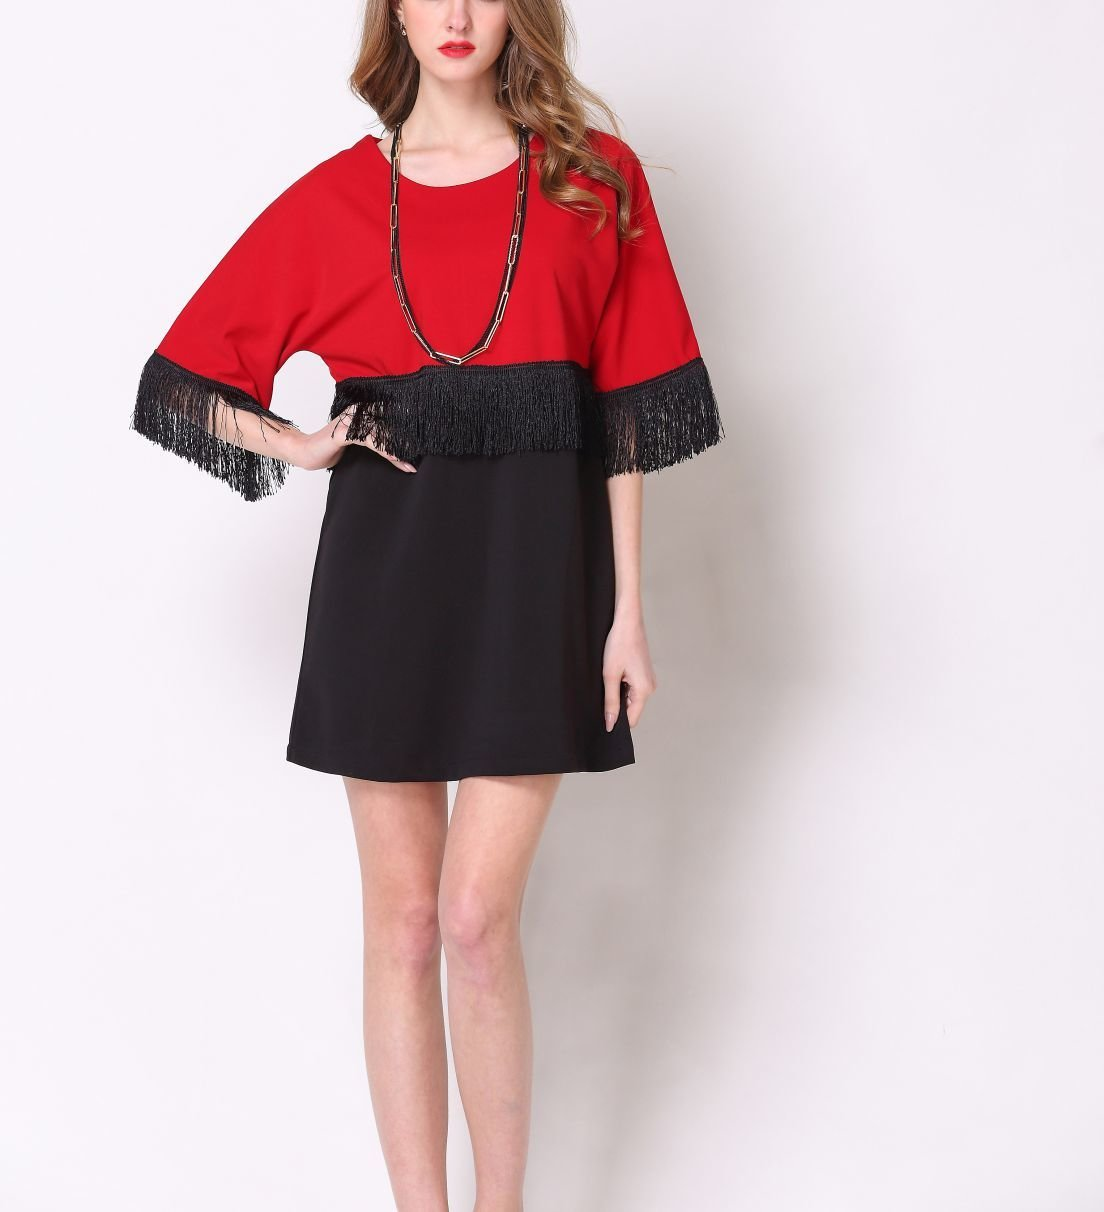 Short Cocktail Dress with Fringed Trim